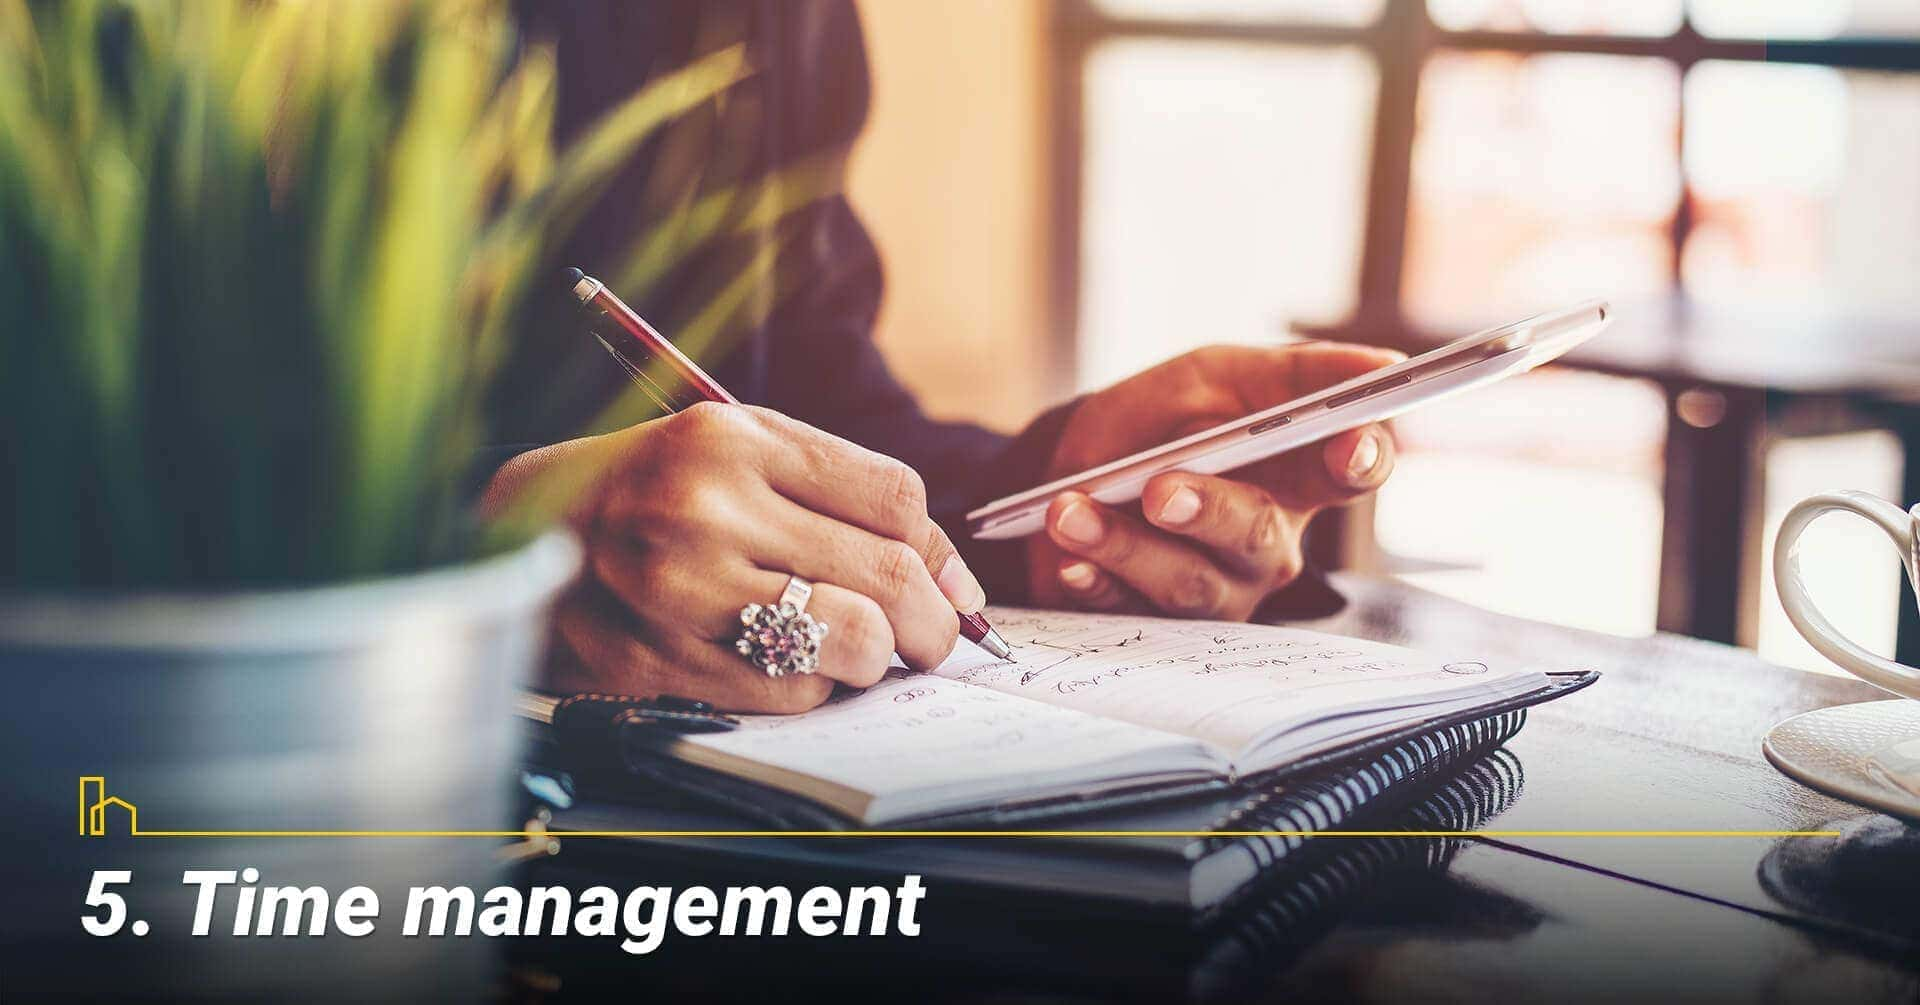 Time management, management your time well